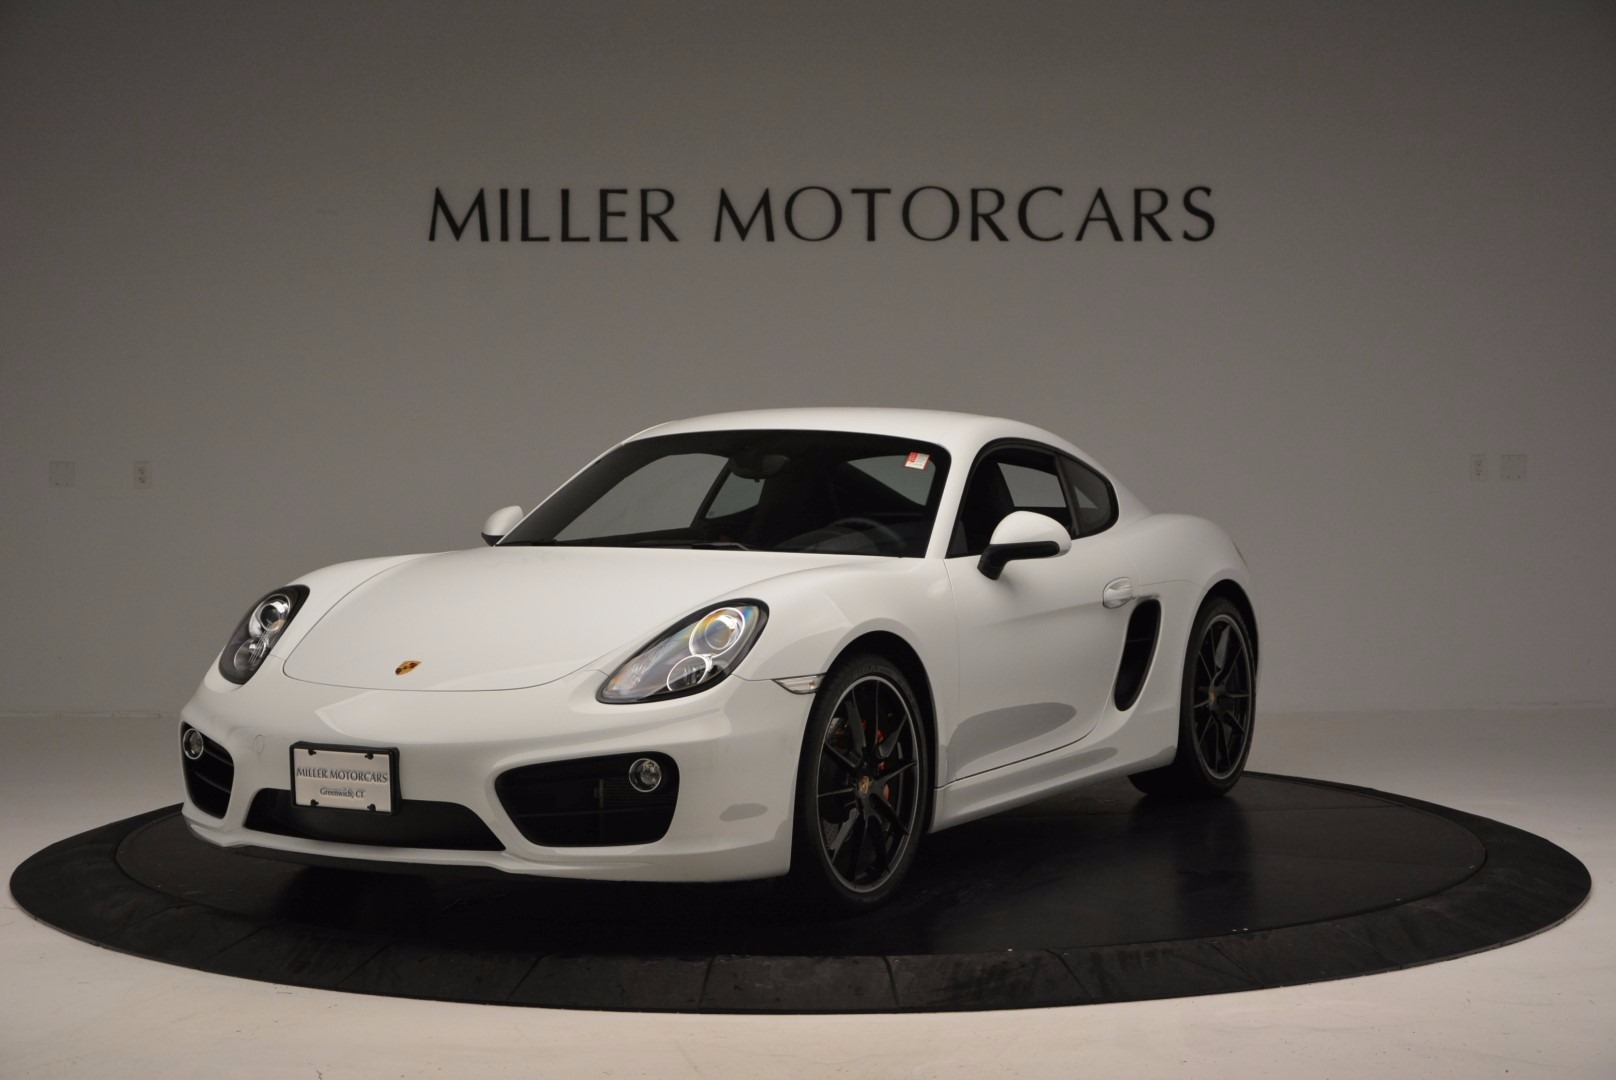 Used 2014 Porsche Cayman S for sale Sold at Rolls-Royce Motor Cars Greenwich in Greenwich CT 06830 1